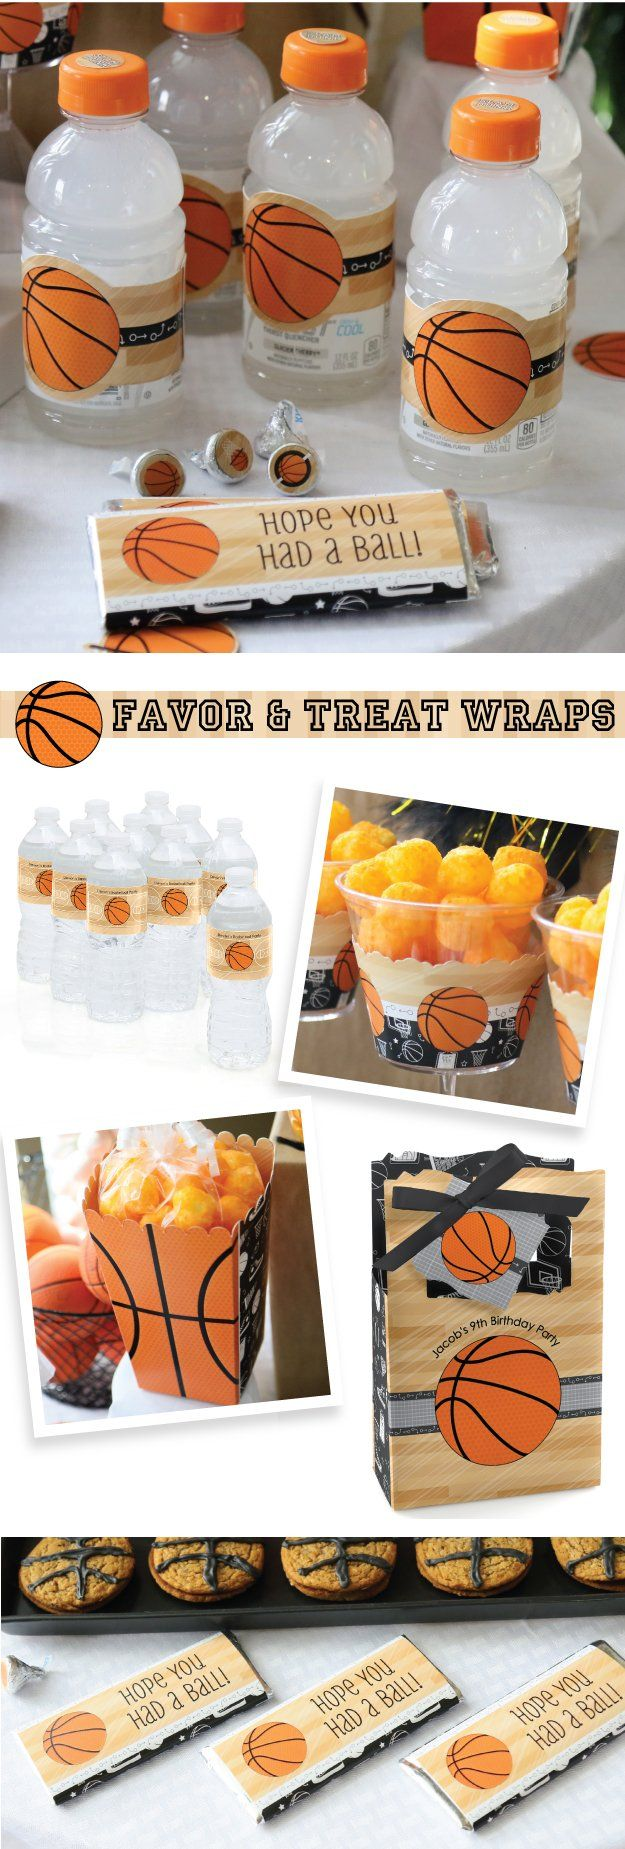 Nothin' But Net - Basketball Party Ideas - Basketball Theme for Baby Shower, Birthday Party or Team Event from BigDotOfHappiness.com